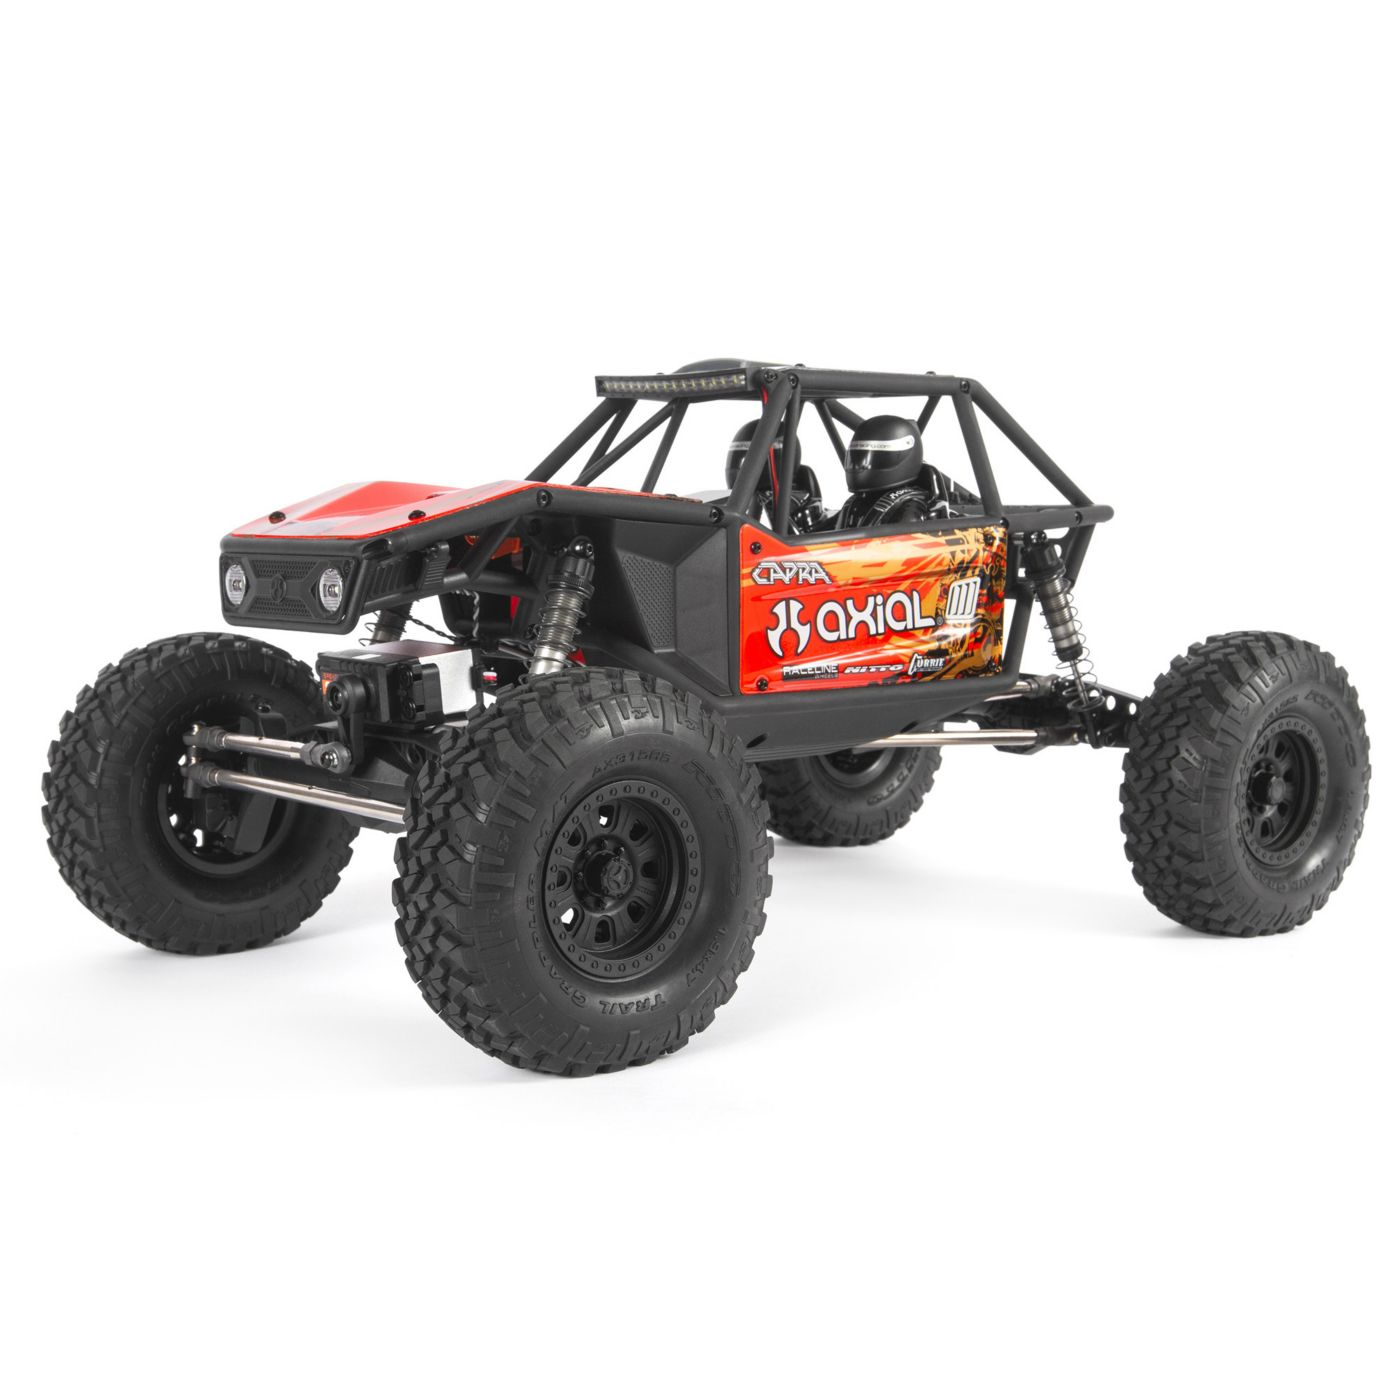 Axial Racing 1/10 Capra 1.9 Unlimited 4WD RTR Trail Buggy, Red